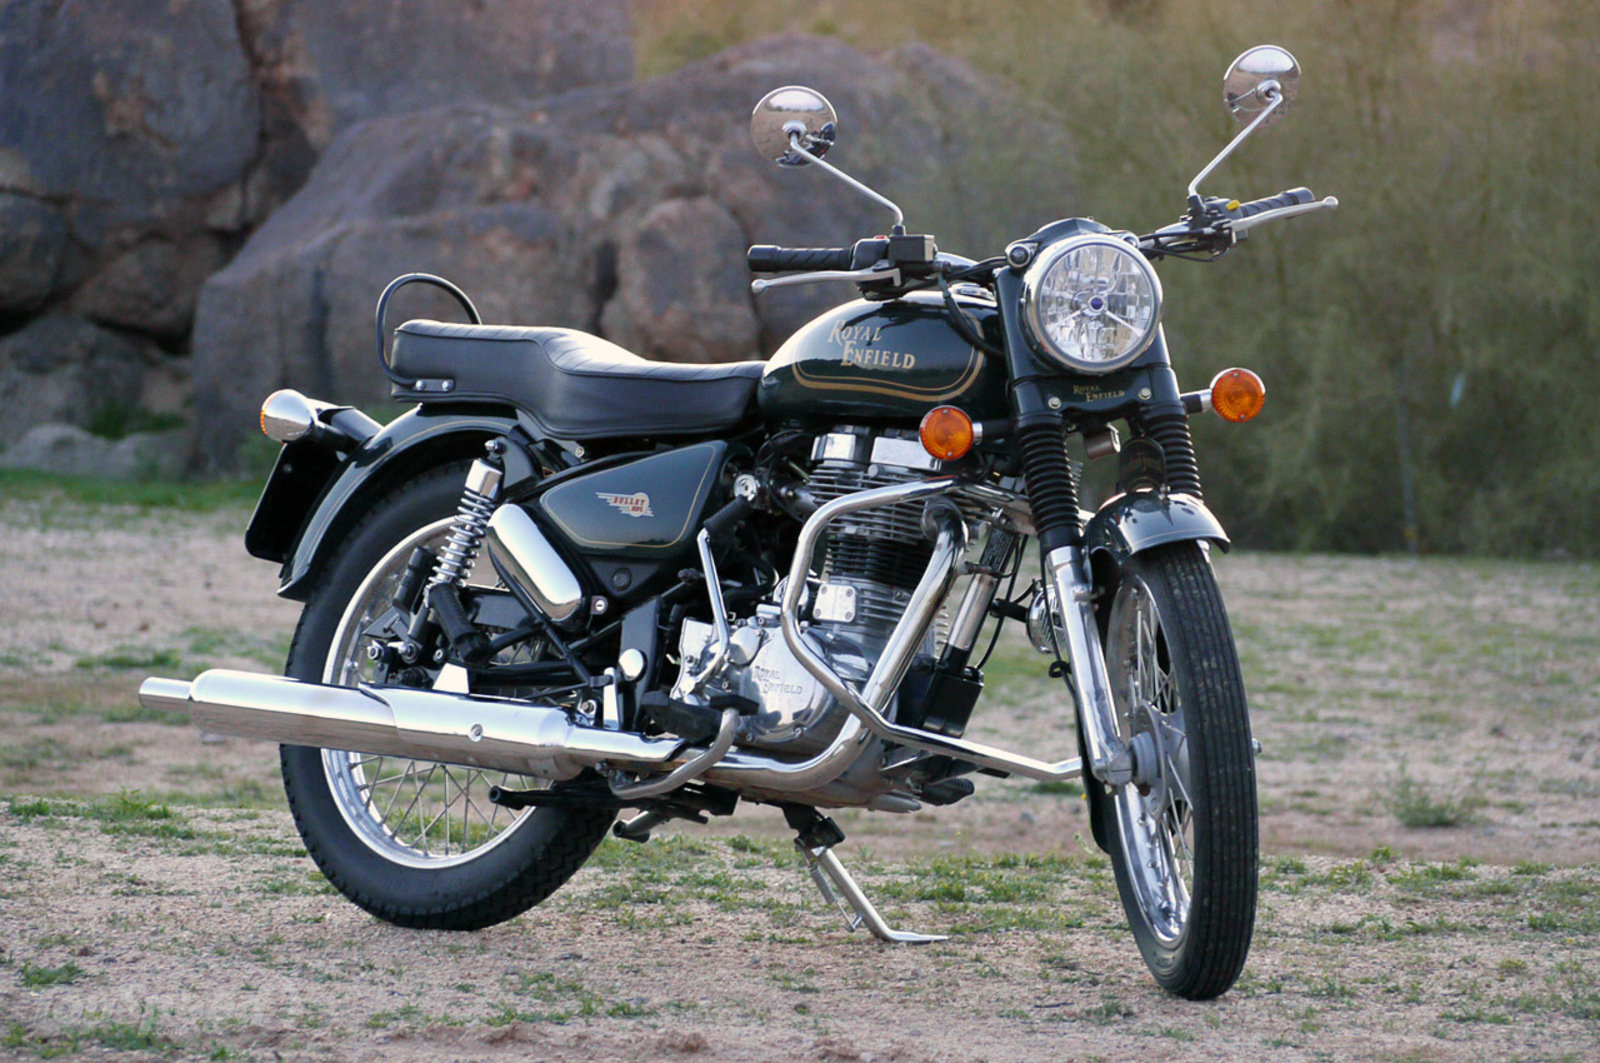 2013 royal enfield bullet g5 classic review top speed. Black Bedroom Furniture Sets. Home Design Ideas